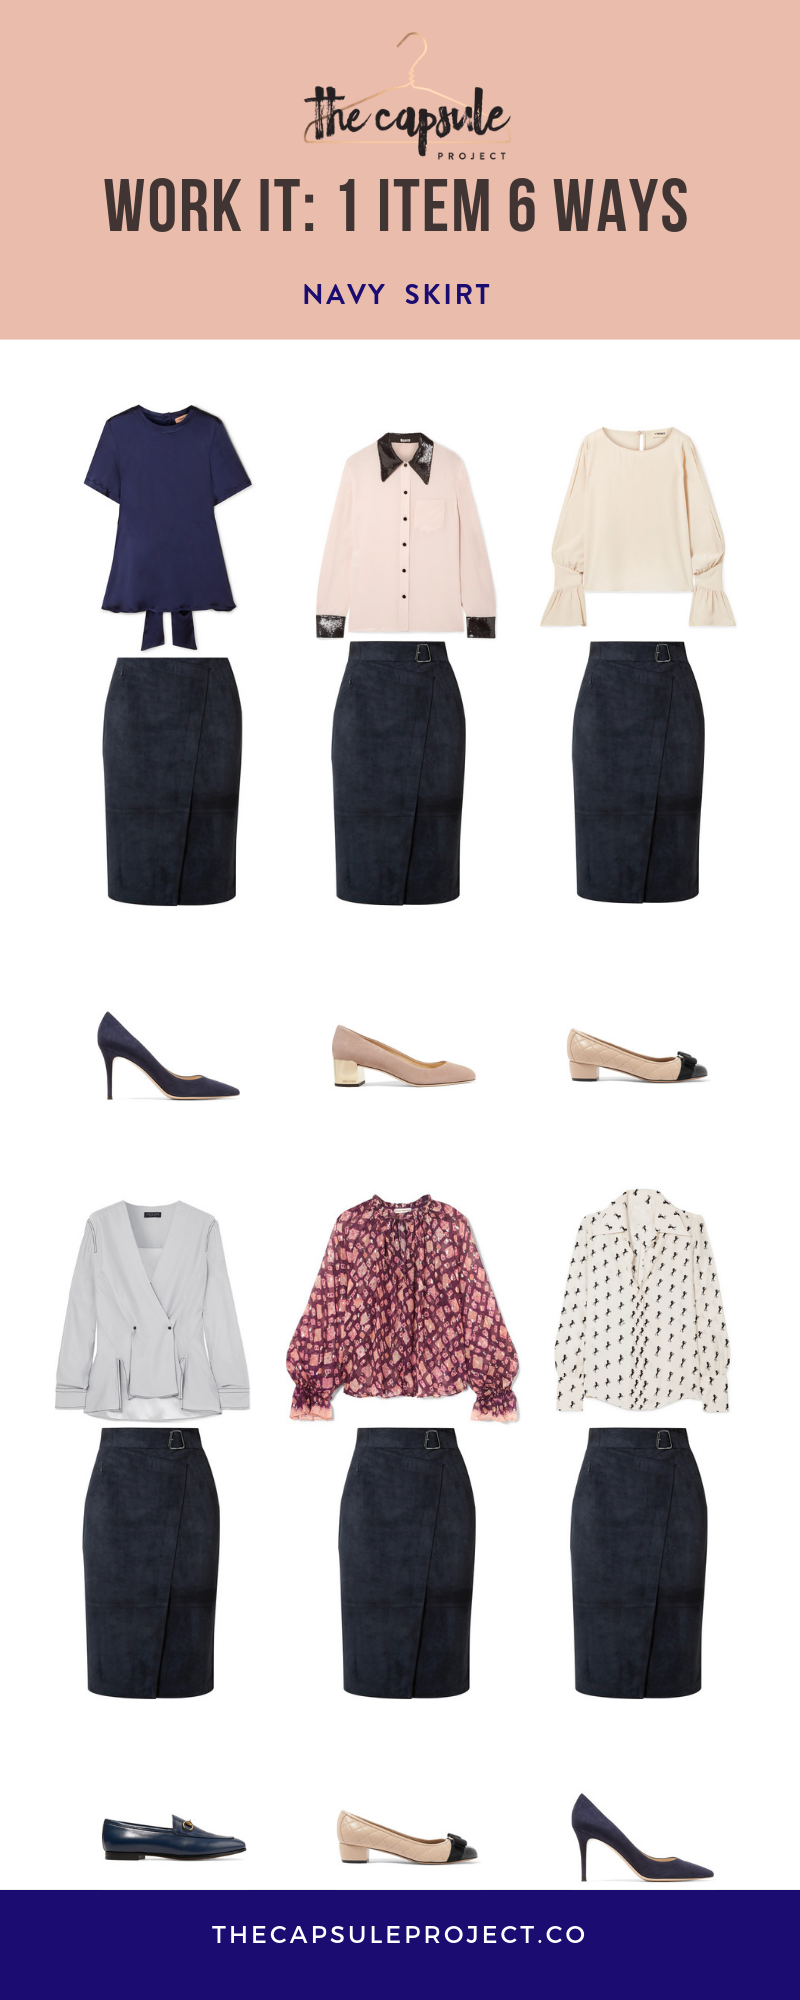 NAVY SKIRT_ 1 ITEM 6 WAYS (2).png